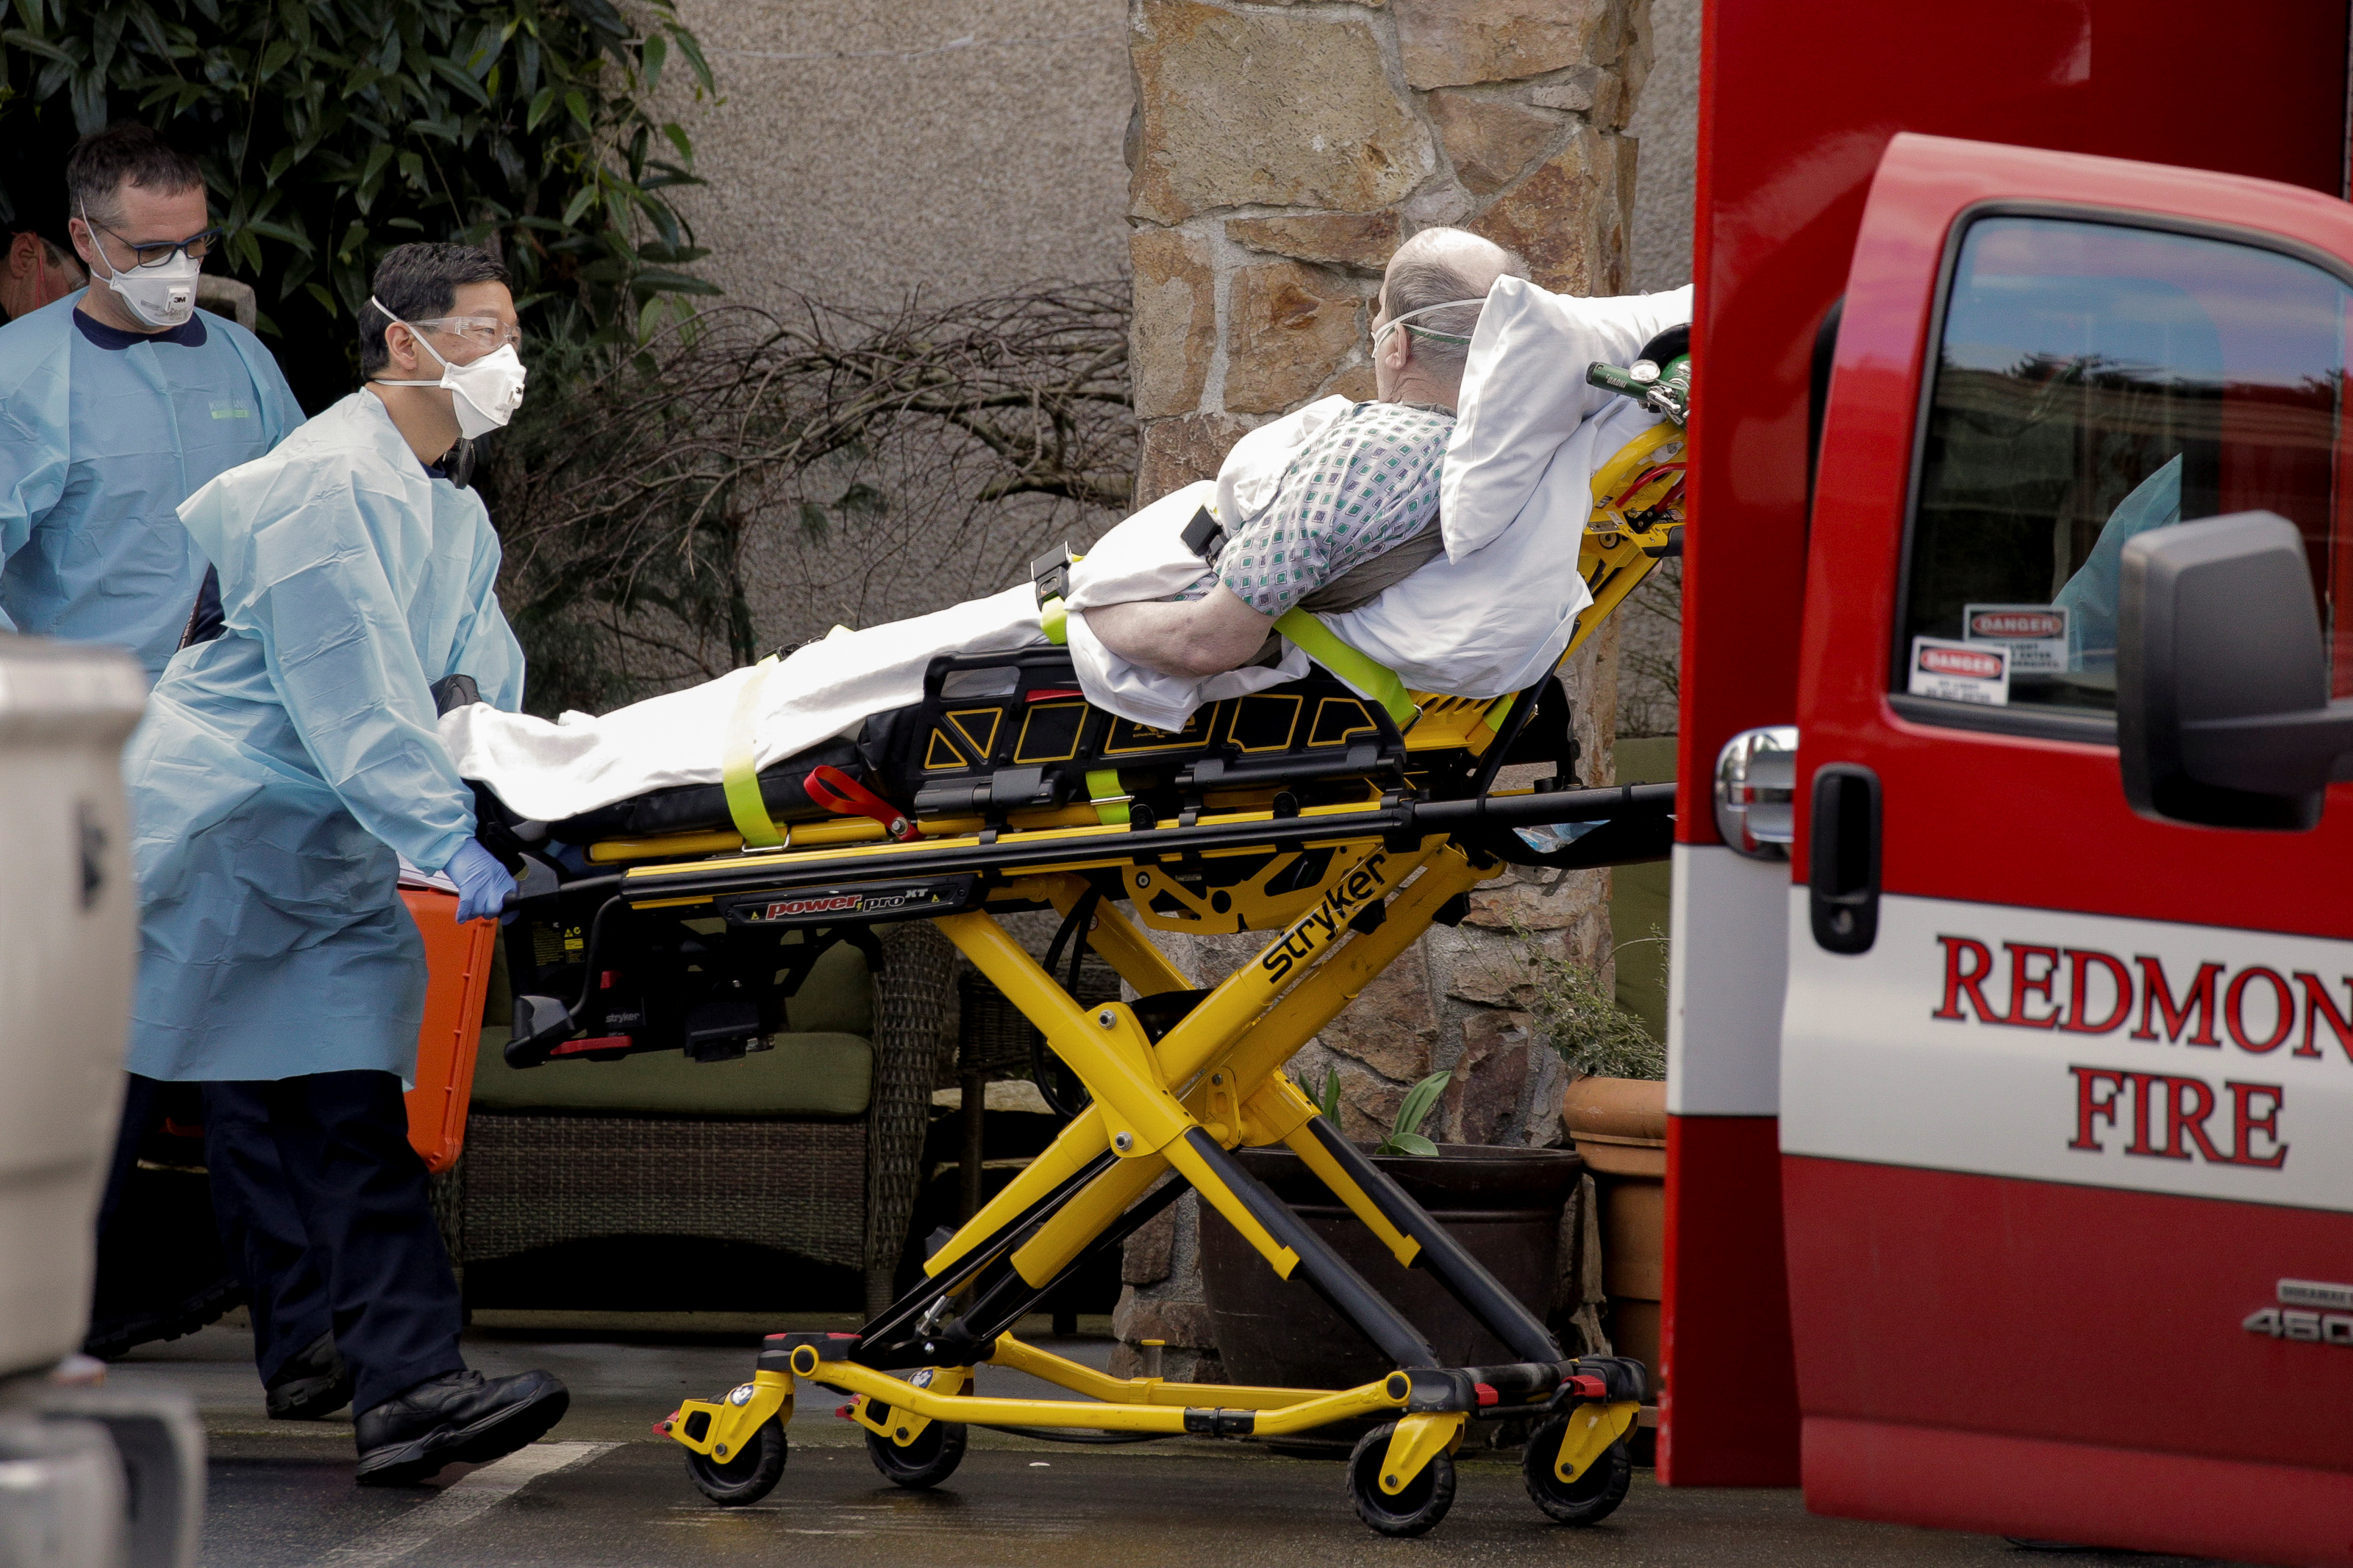 Medics transport a man on a stretcher into an ambulance at the Life Care Center, a long-term care facility linked to several confirmed coronavirus cases, in Kirkland, Washington, on  March 3, 2020. (David Ryder/Reuters)